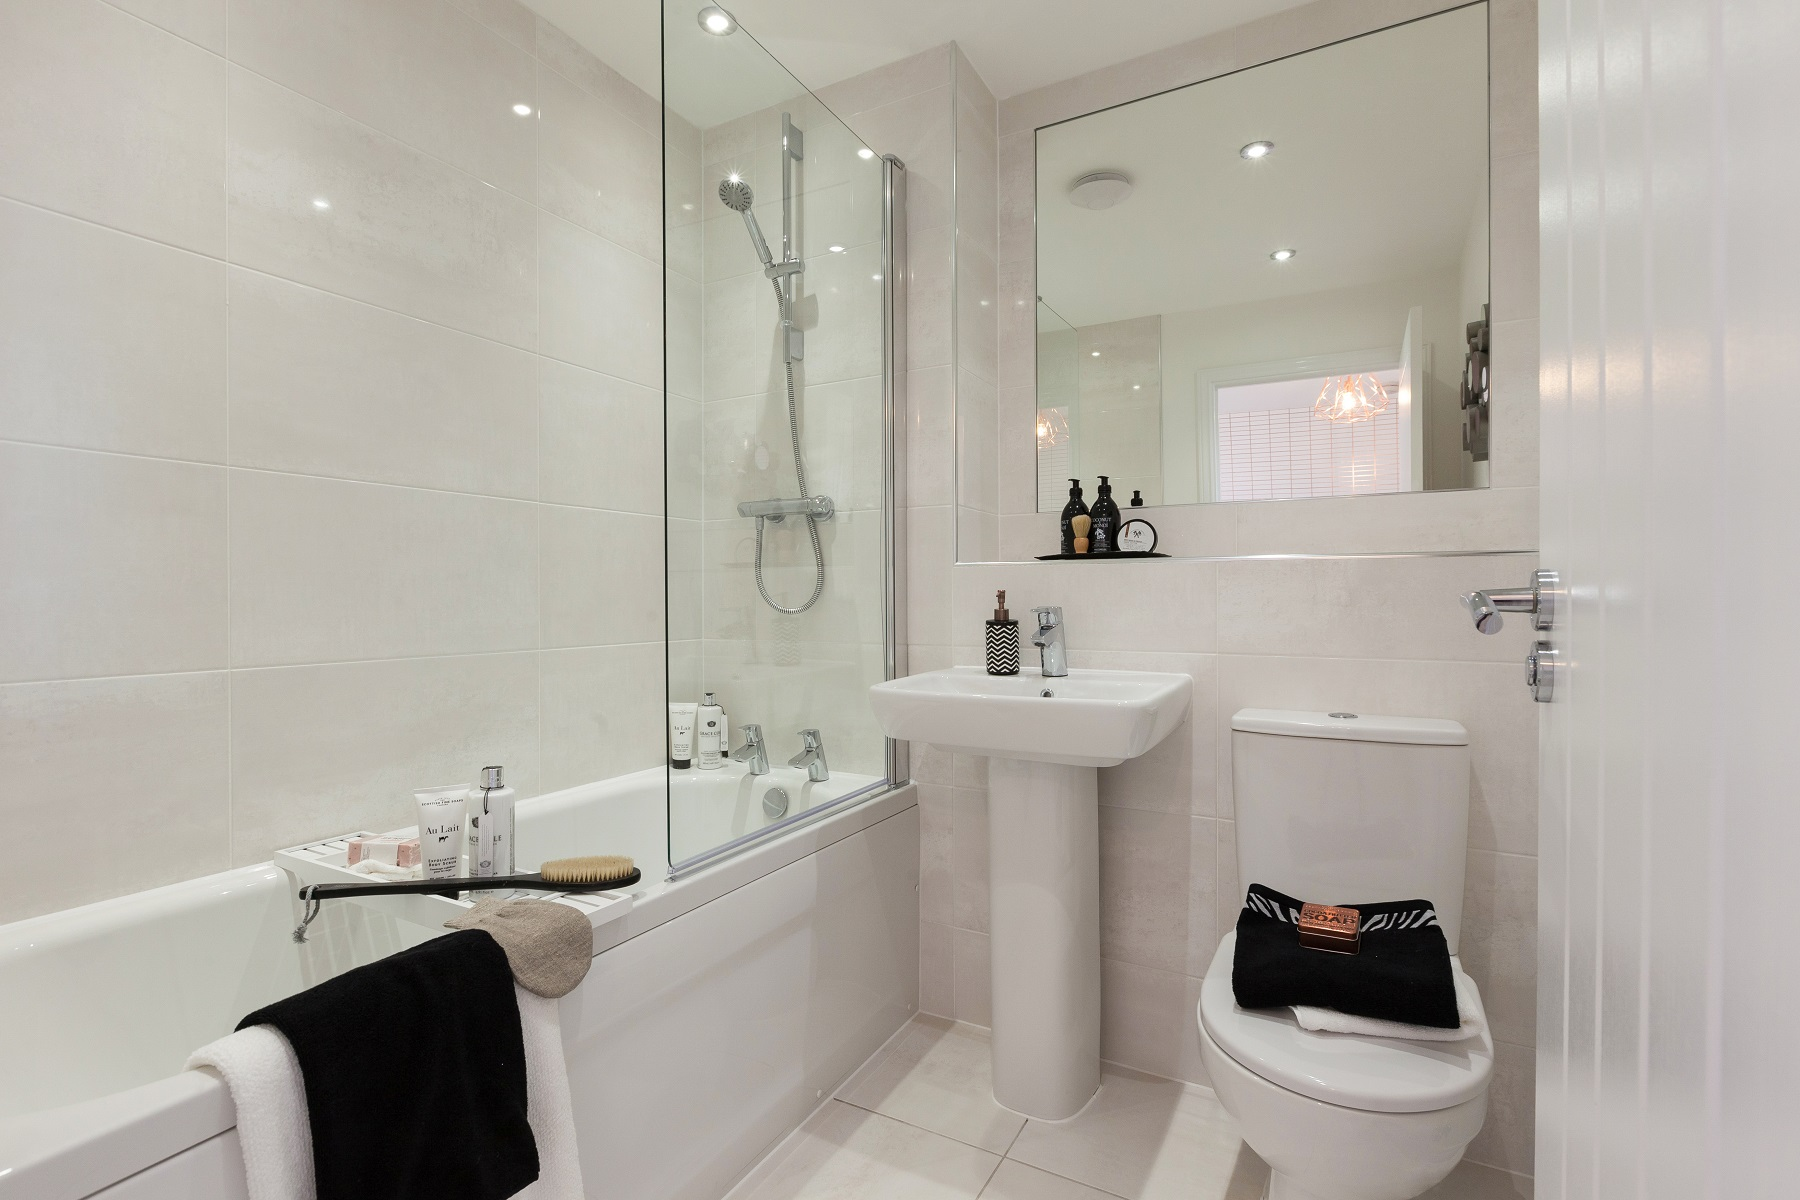 TW NM_Pastures New_monkford_Bathroom